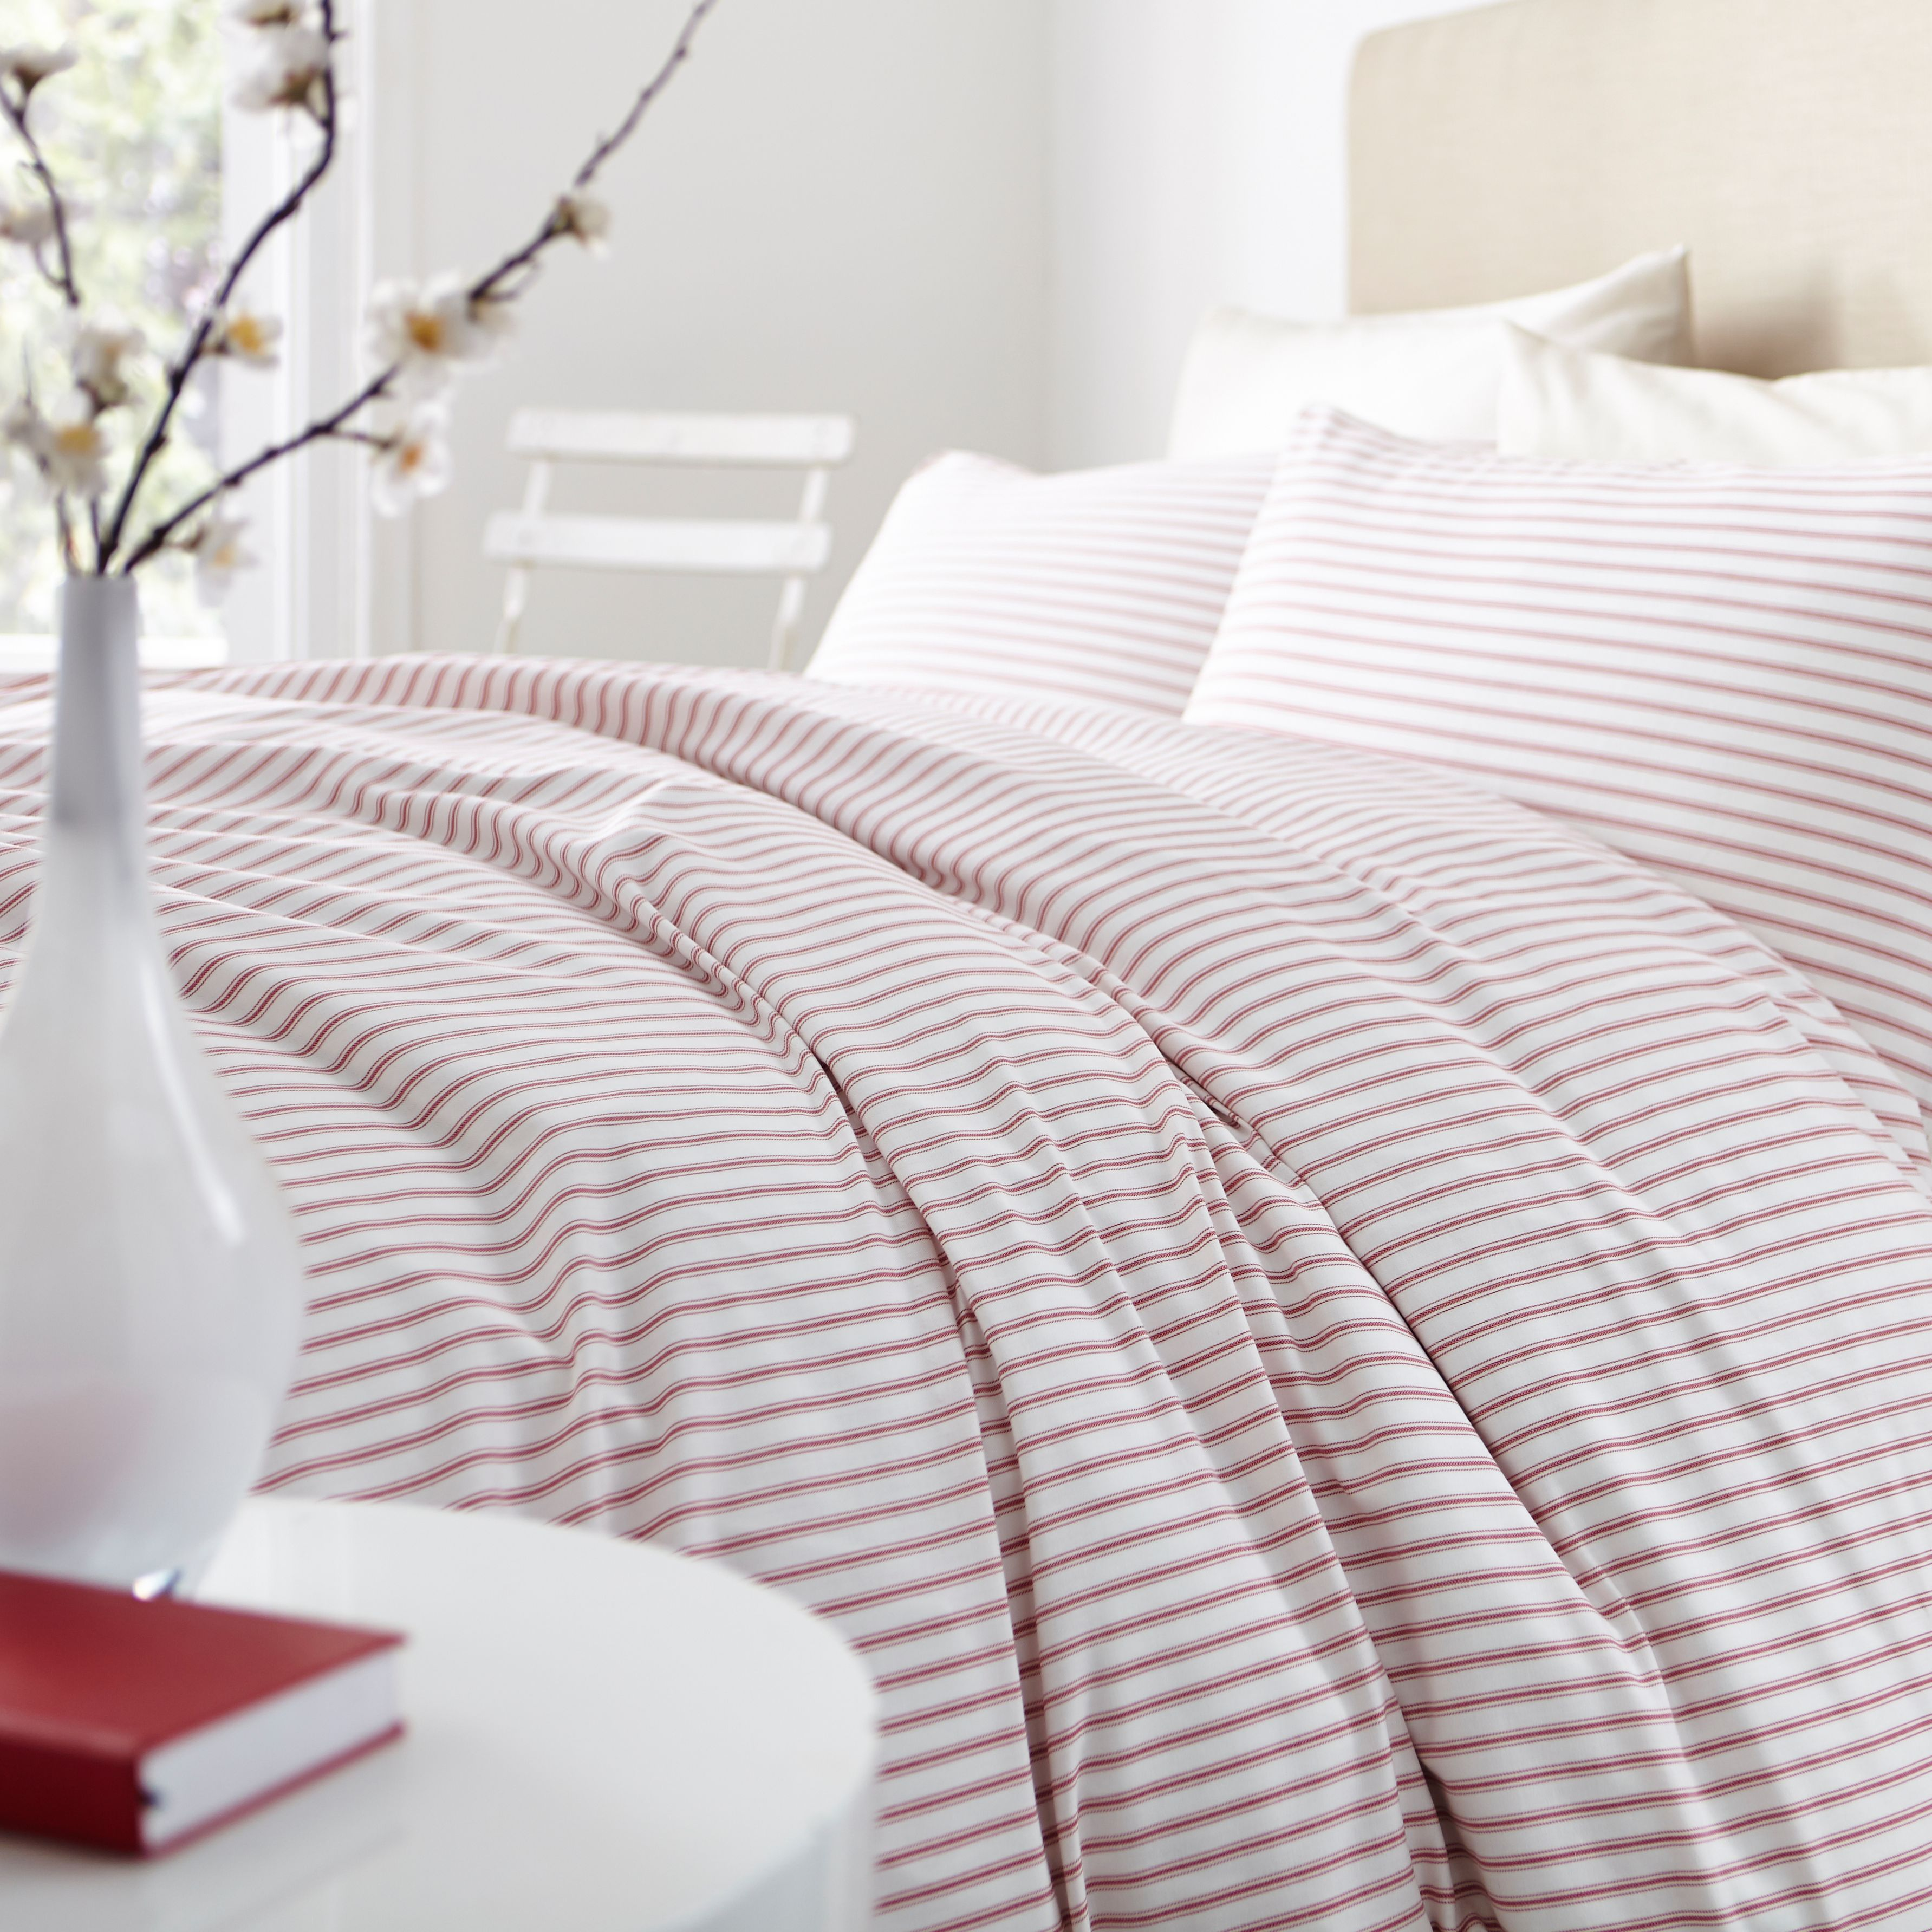 tanks stripe cabinets septic restoration home hall duvet design beadboard installation cover supplies dining cabinetry building modern ticking expansive